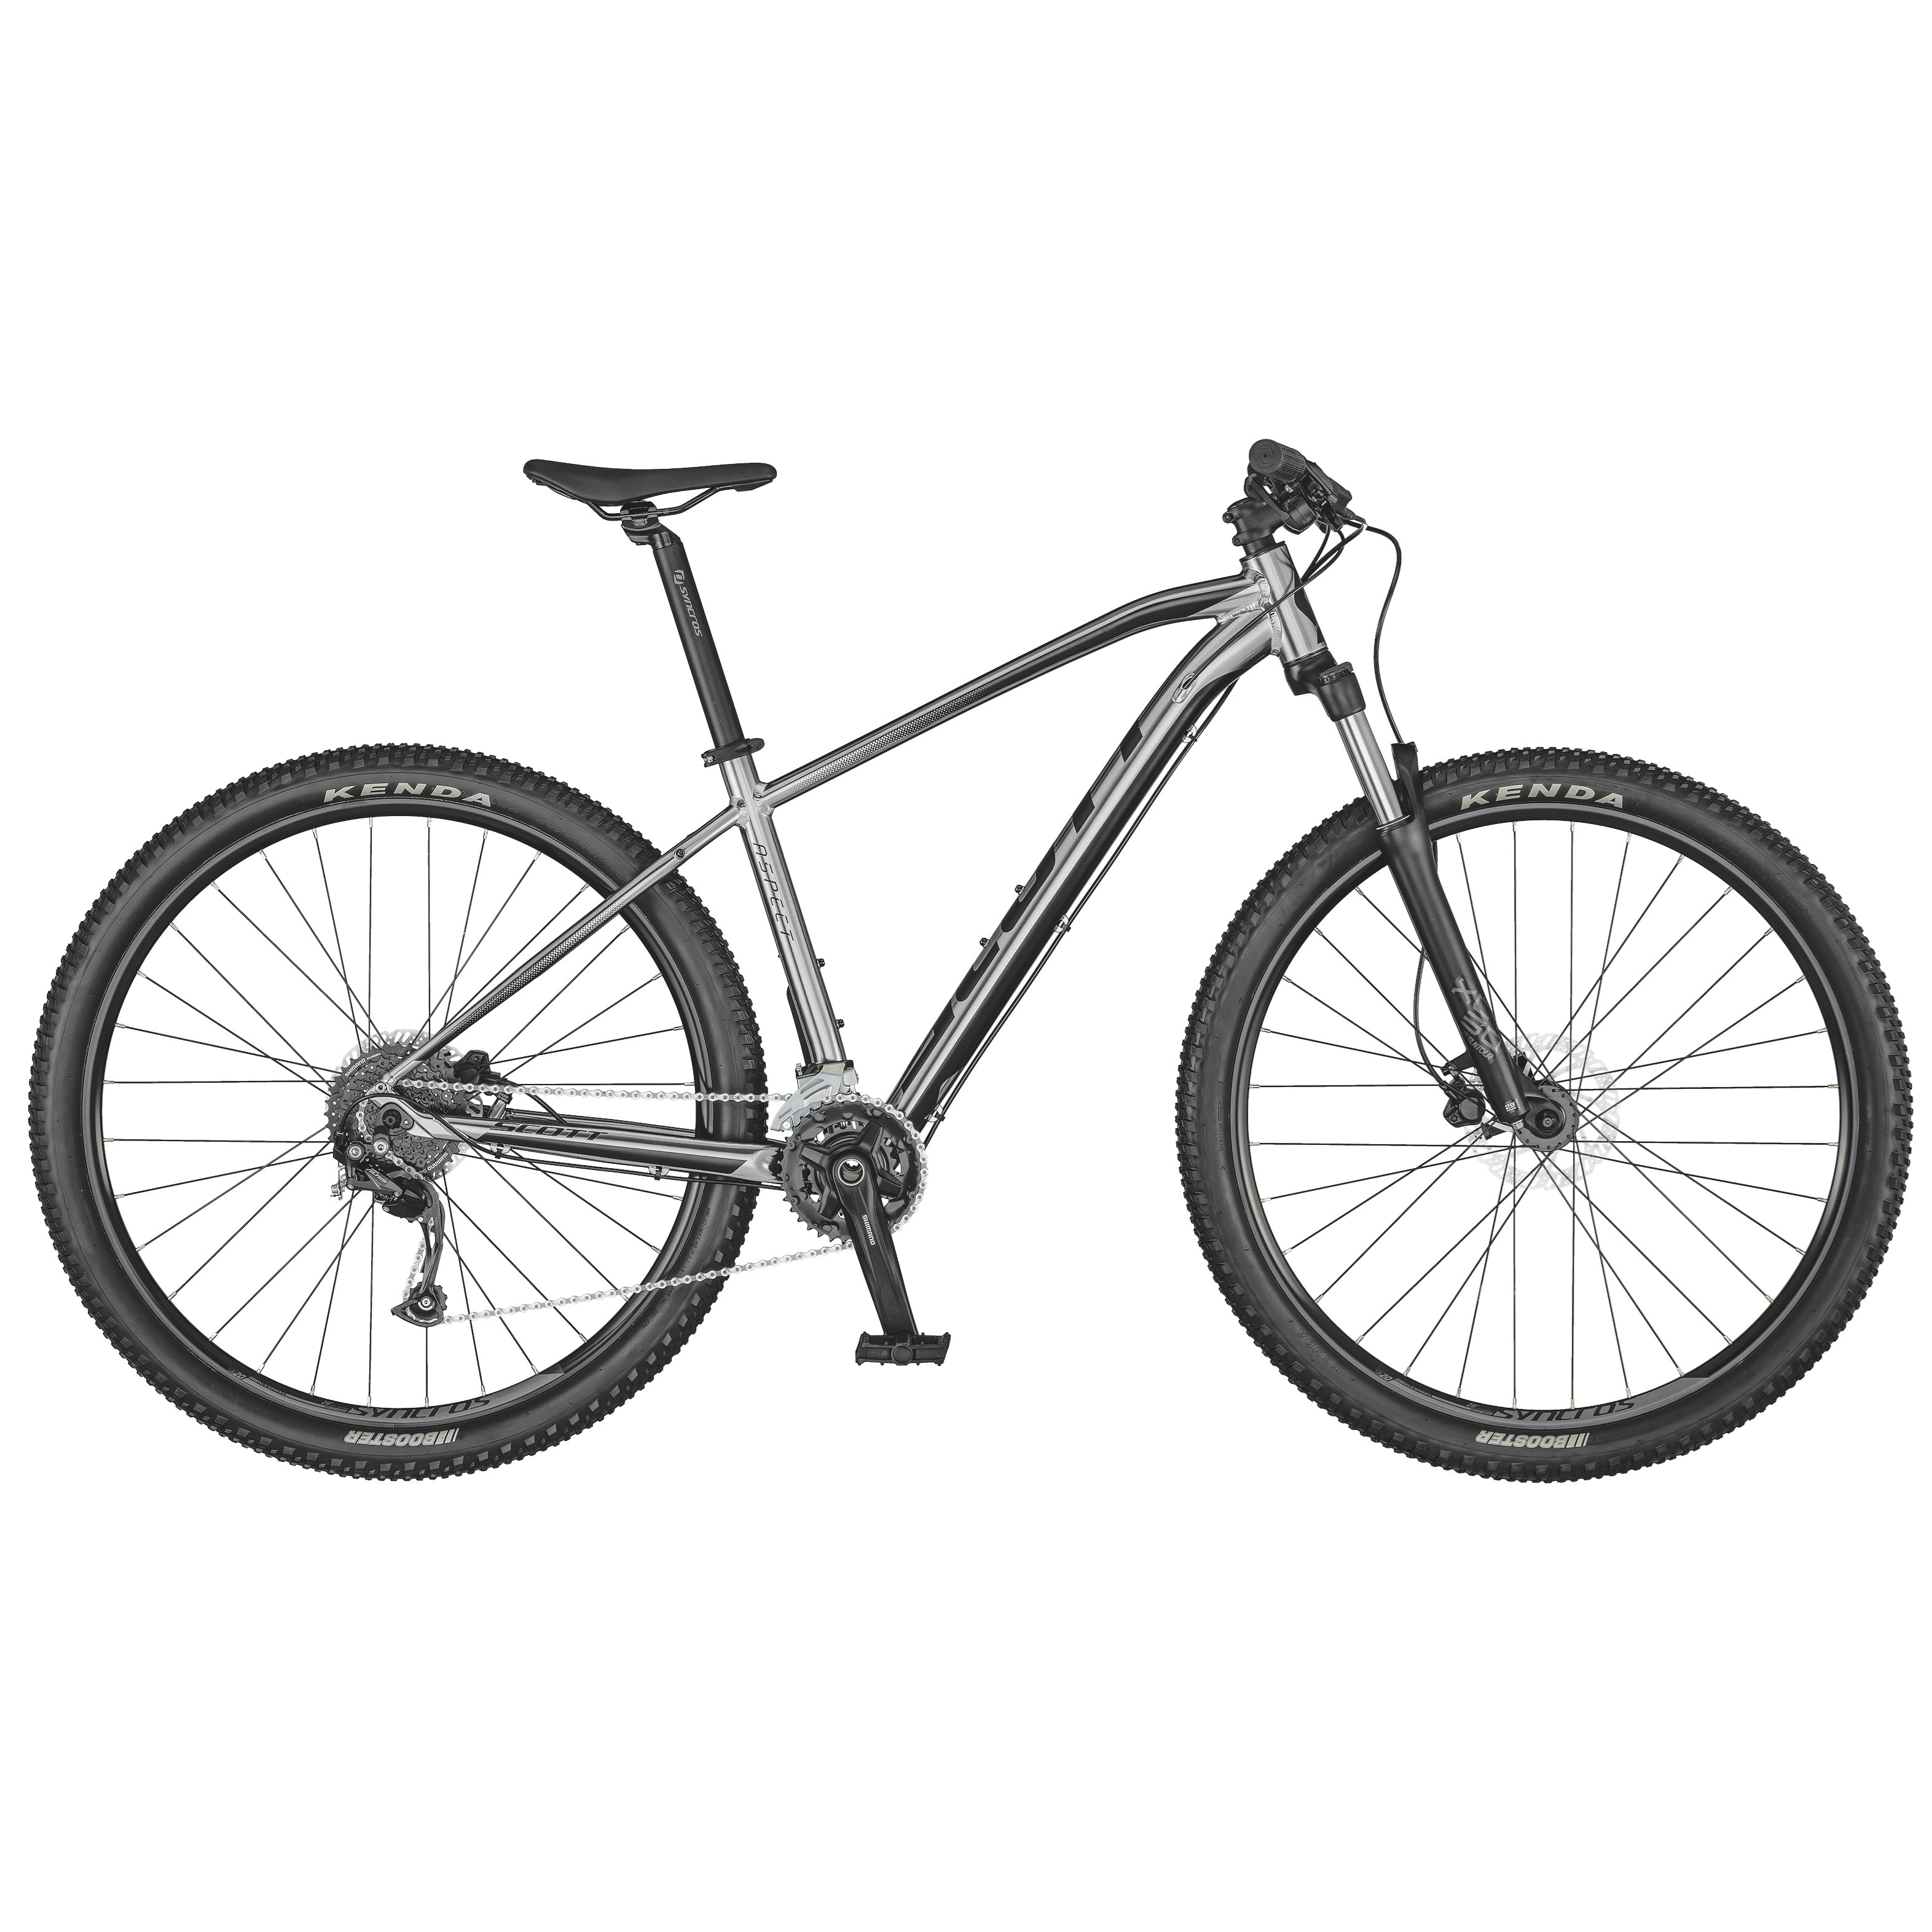 HEATLE 26 Inch 21-Speed Mountain Bike Bicycle Adult Student Outdoors Hardtail Mountain Bikes Cycling Road Bikes Exercise Bikes